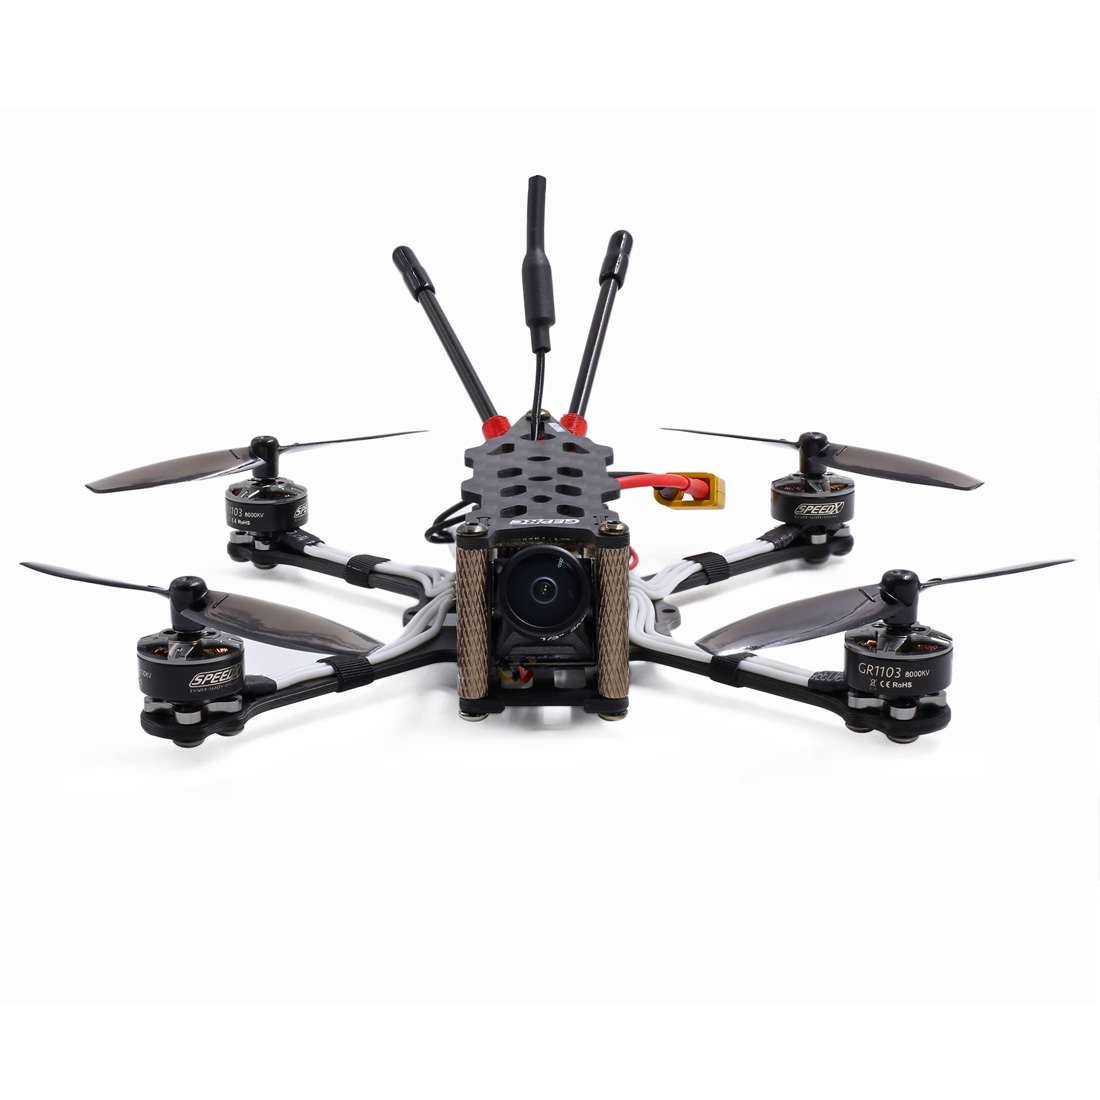 GEPRC PHANTOM Toothpick 125mm 2 3S Micro Drone Freestyle Quadcopter with Frsky XM RX GEP 12A F4 AIO Flight Controller in Parts Accessories from Toys Hobbies